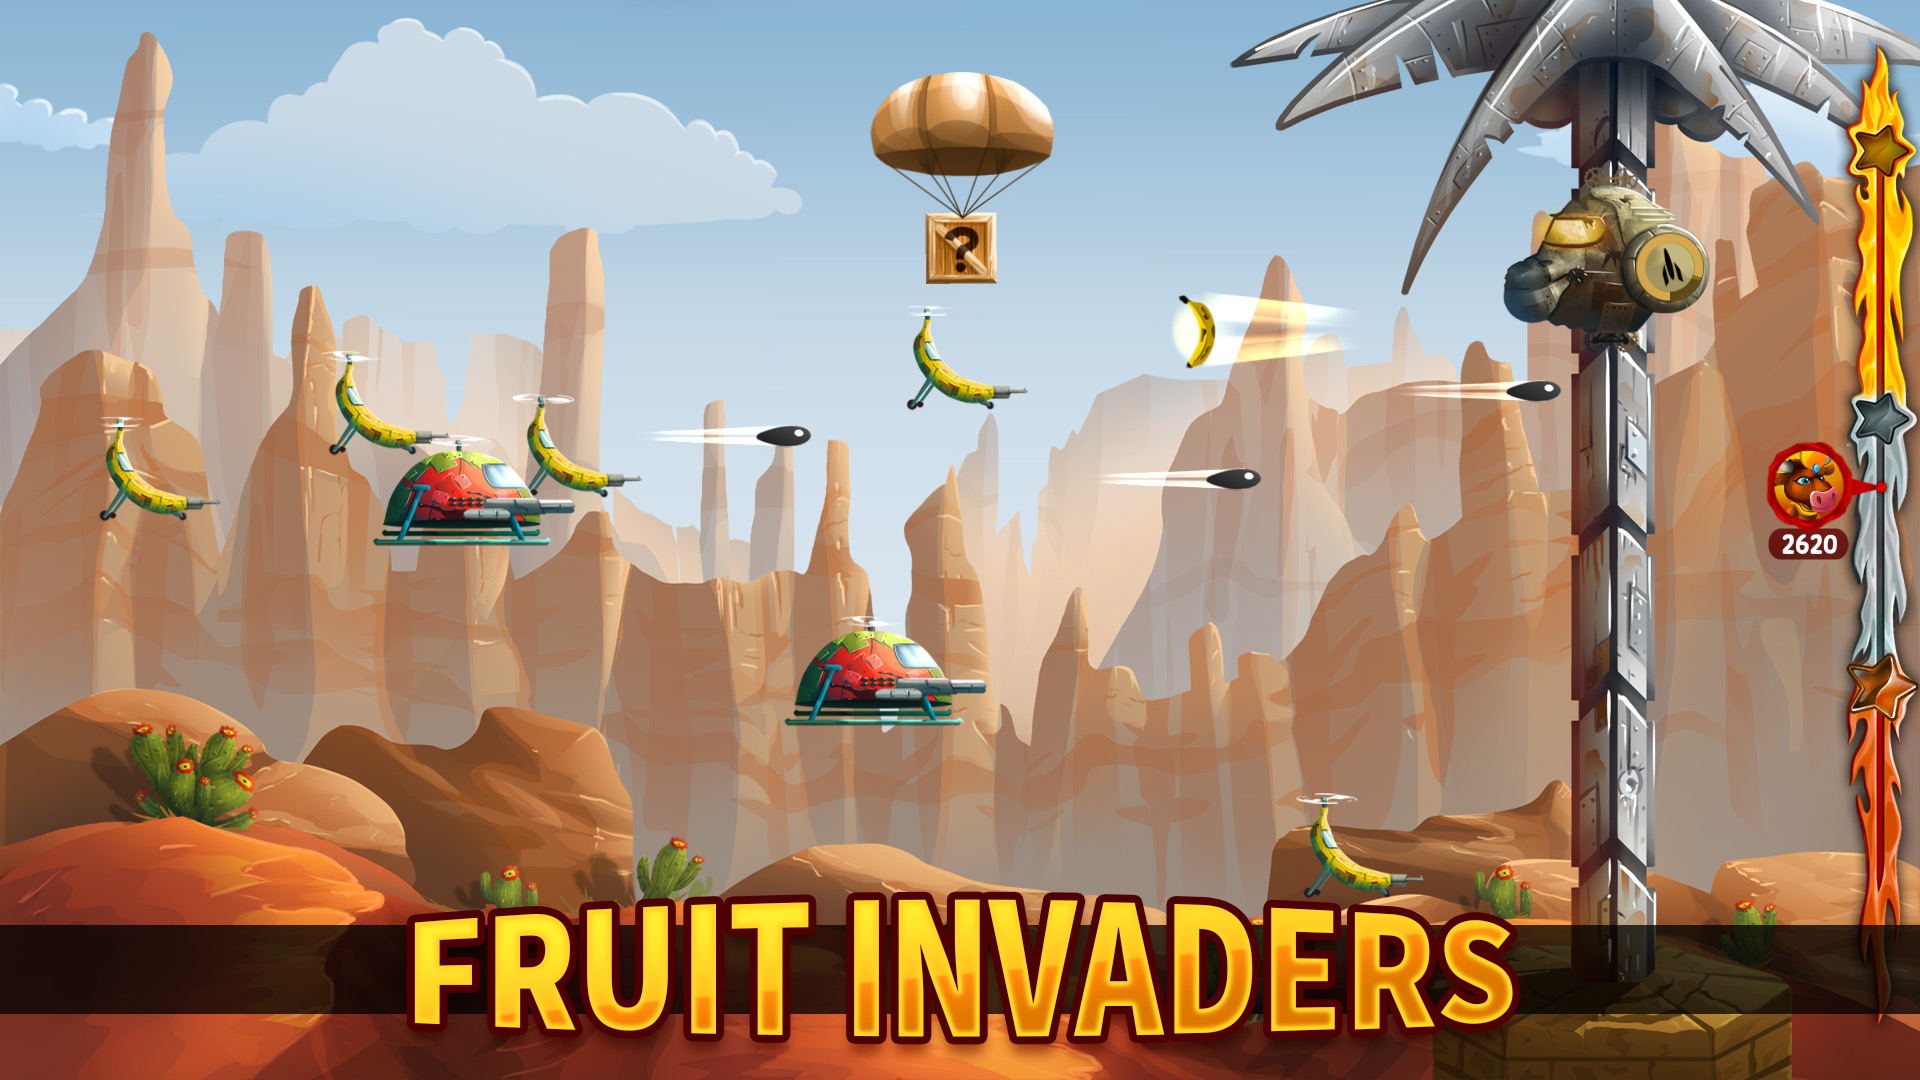 PP_FRUIT_INVADERS